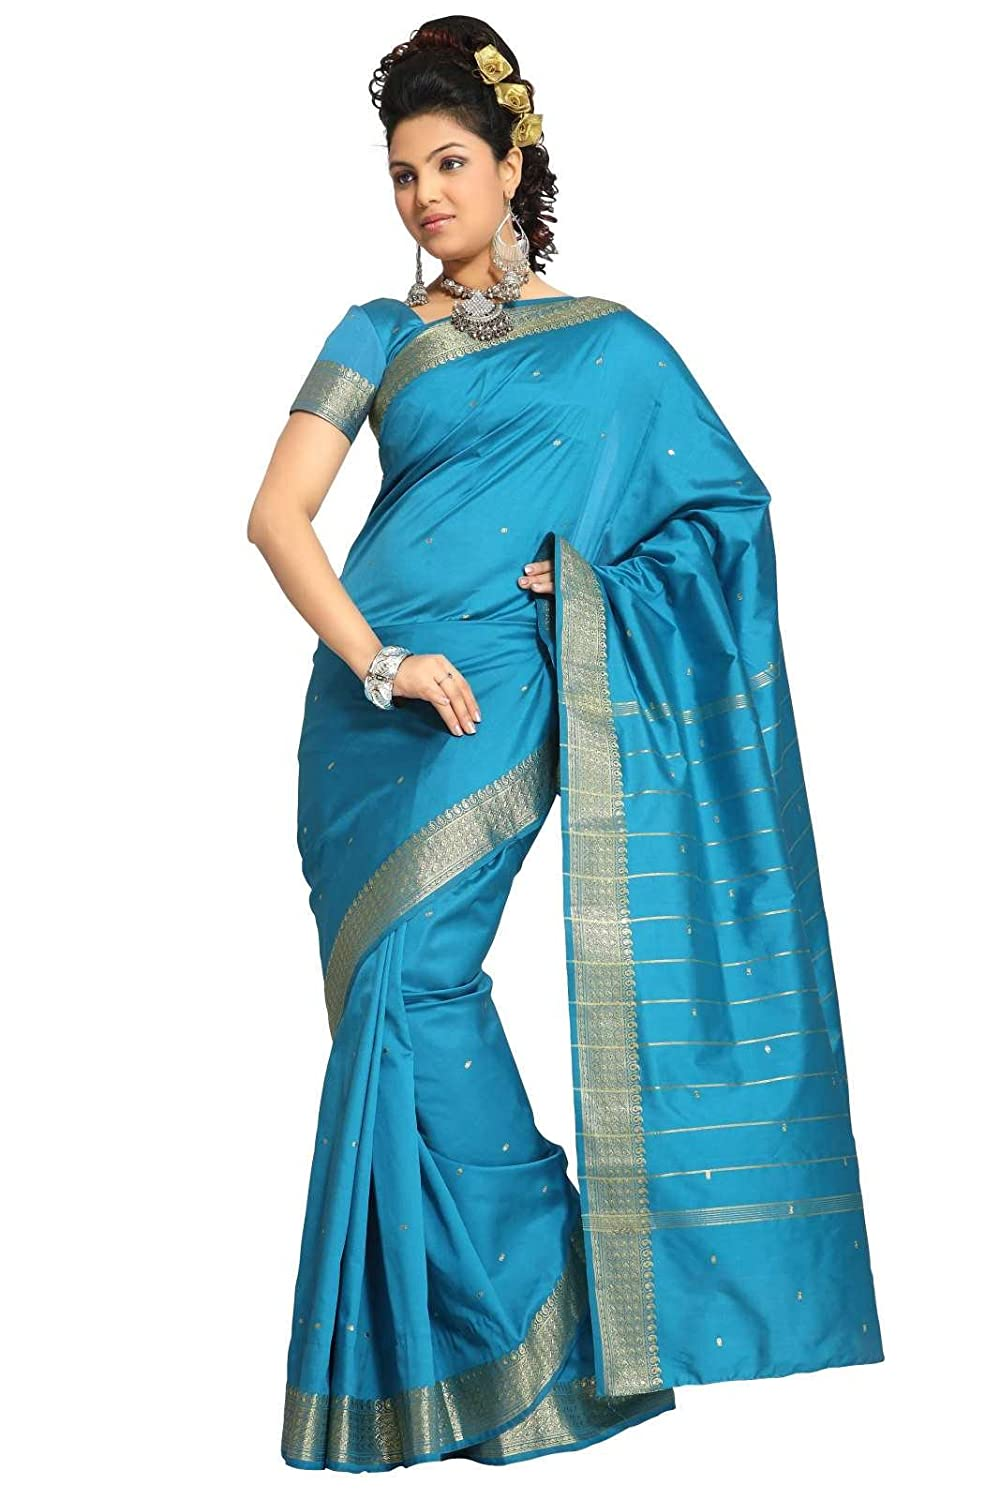 Other Women's Clothing Indian Saree Clothing, Shoes & Accessories